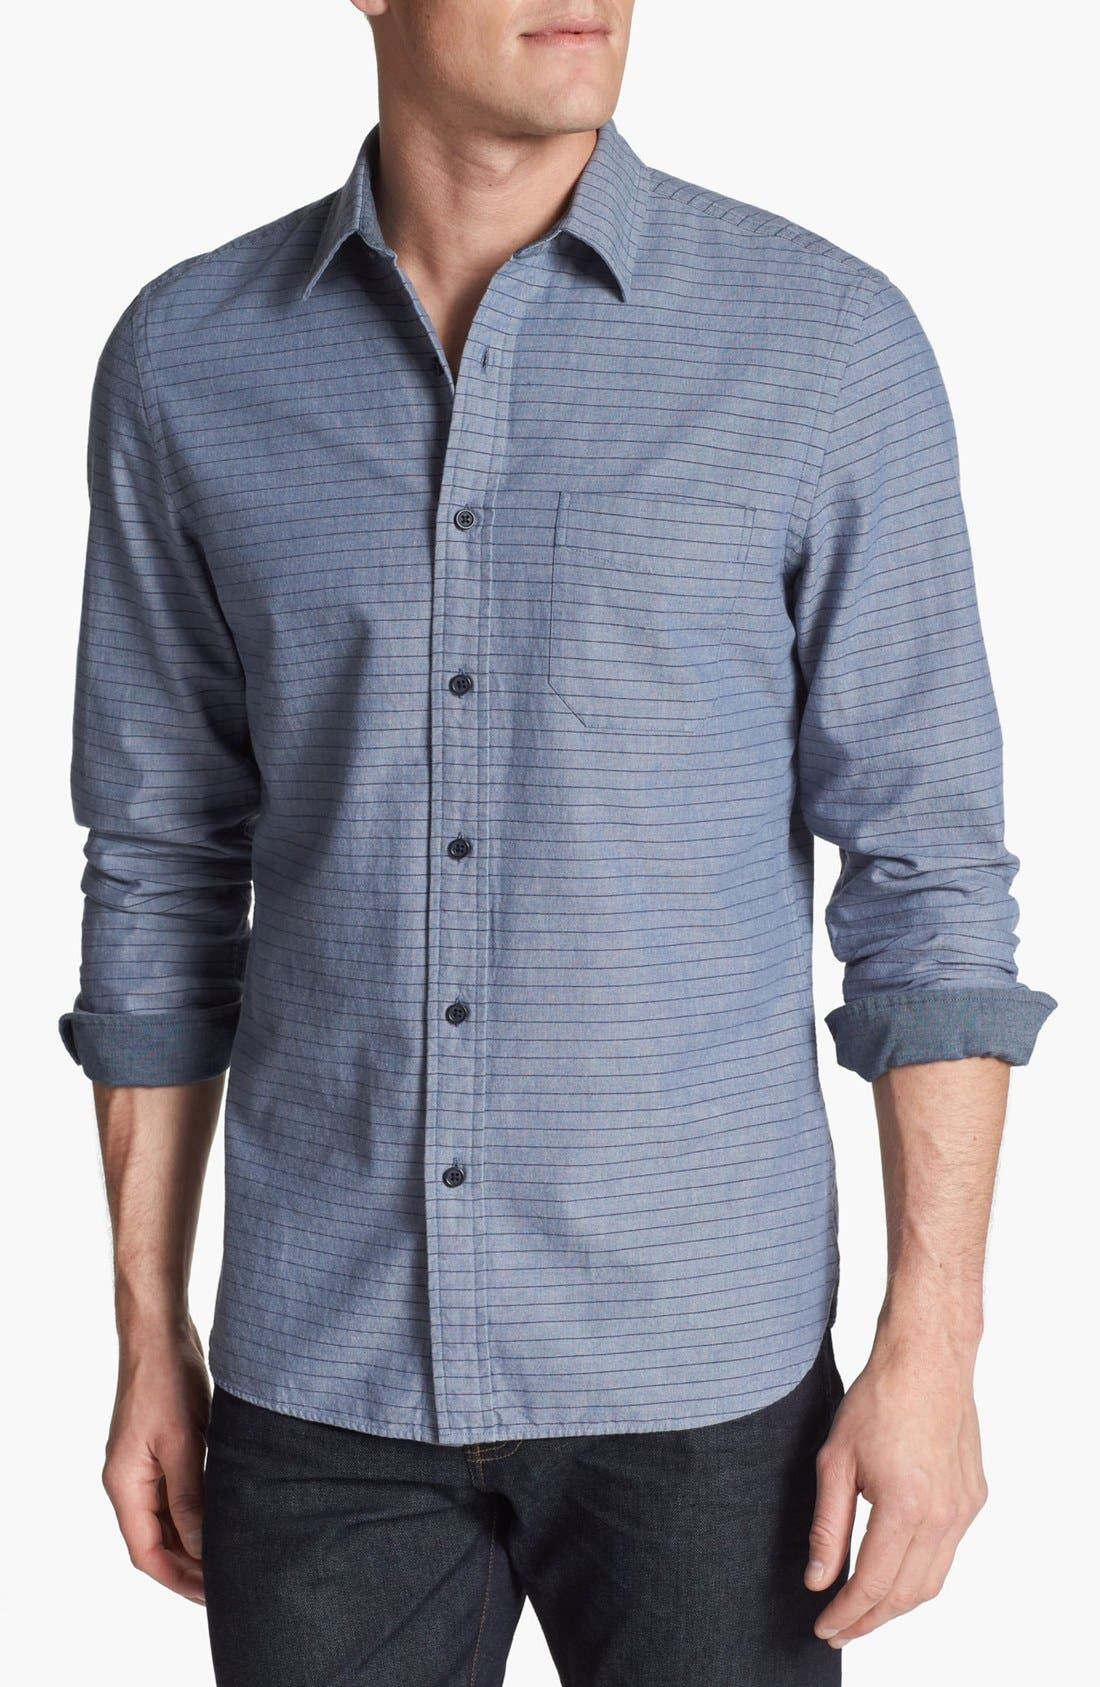 Alternate Image 1 Selected - Wallin & Bros. Trim Fit Sport Shirt